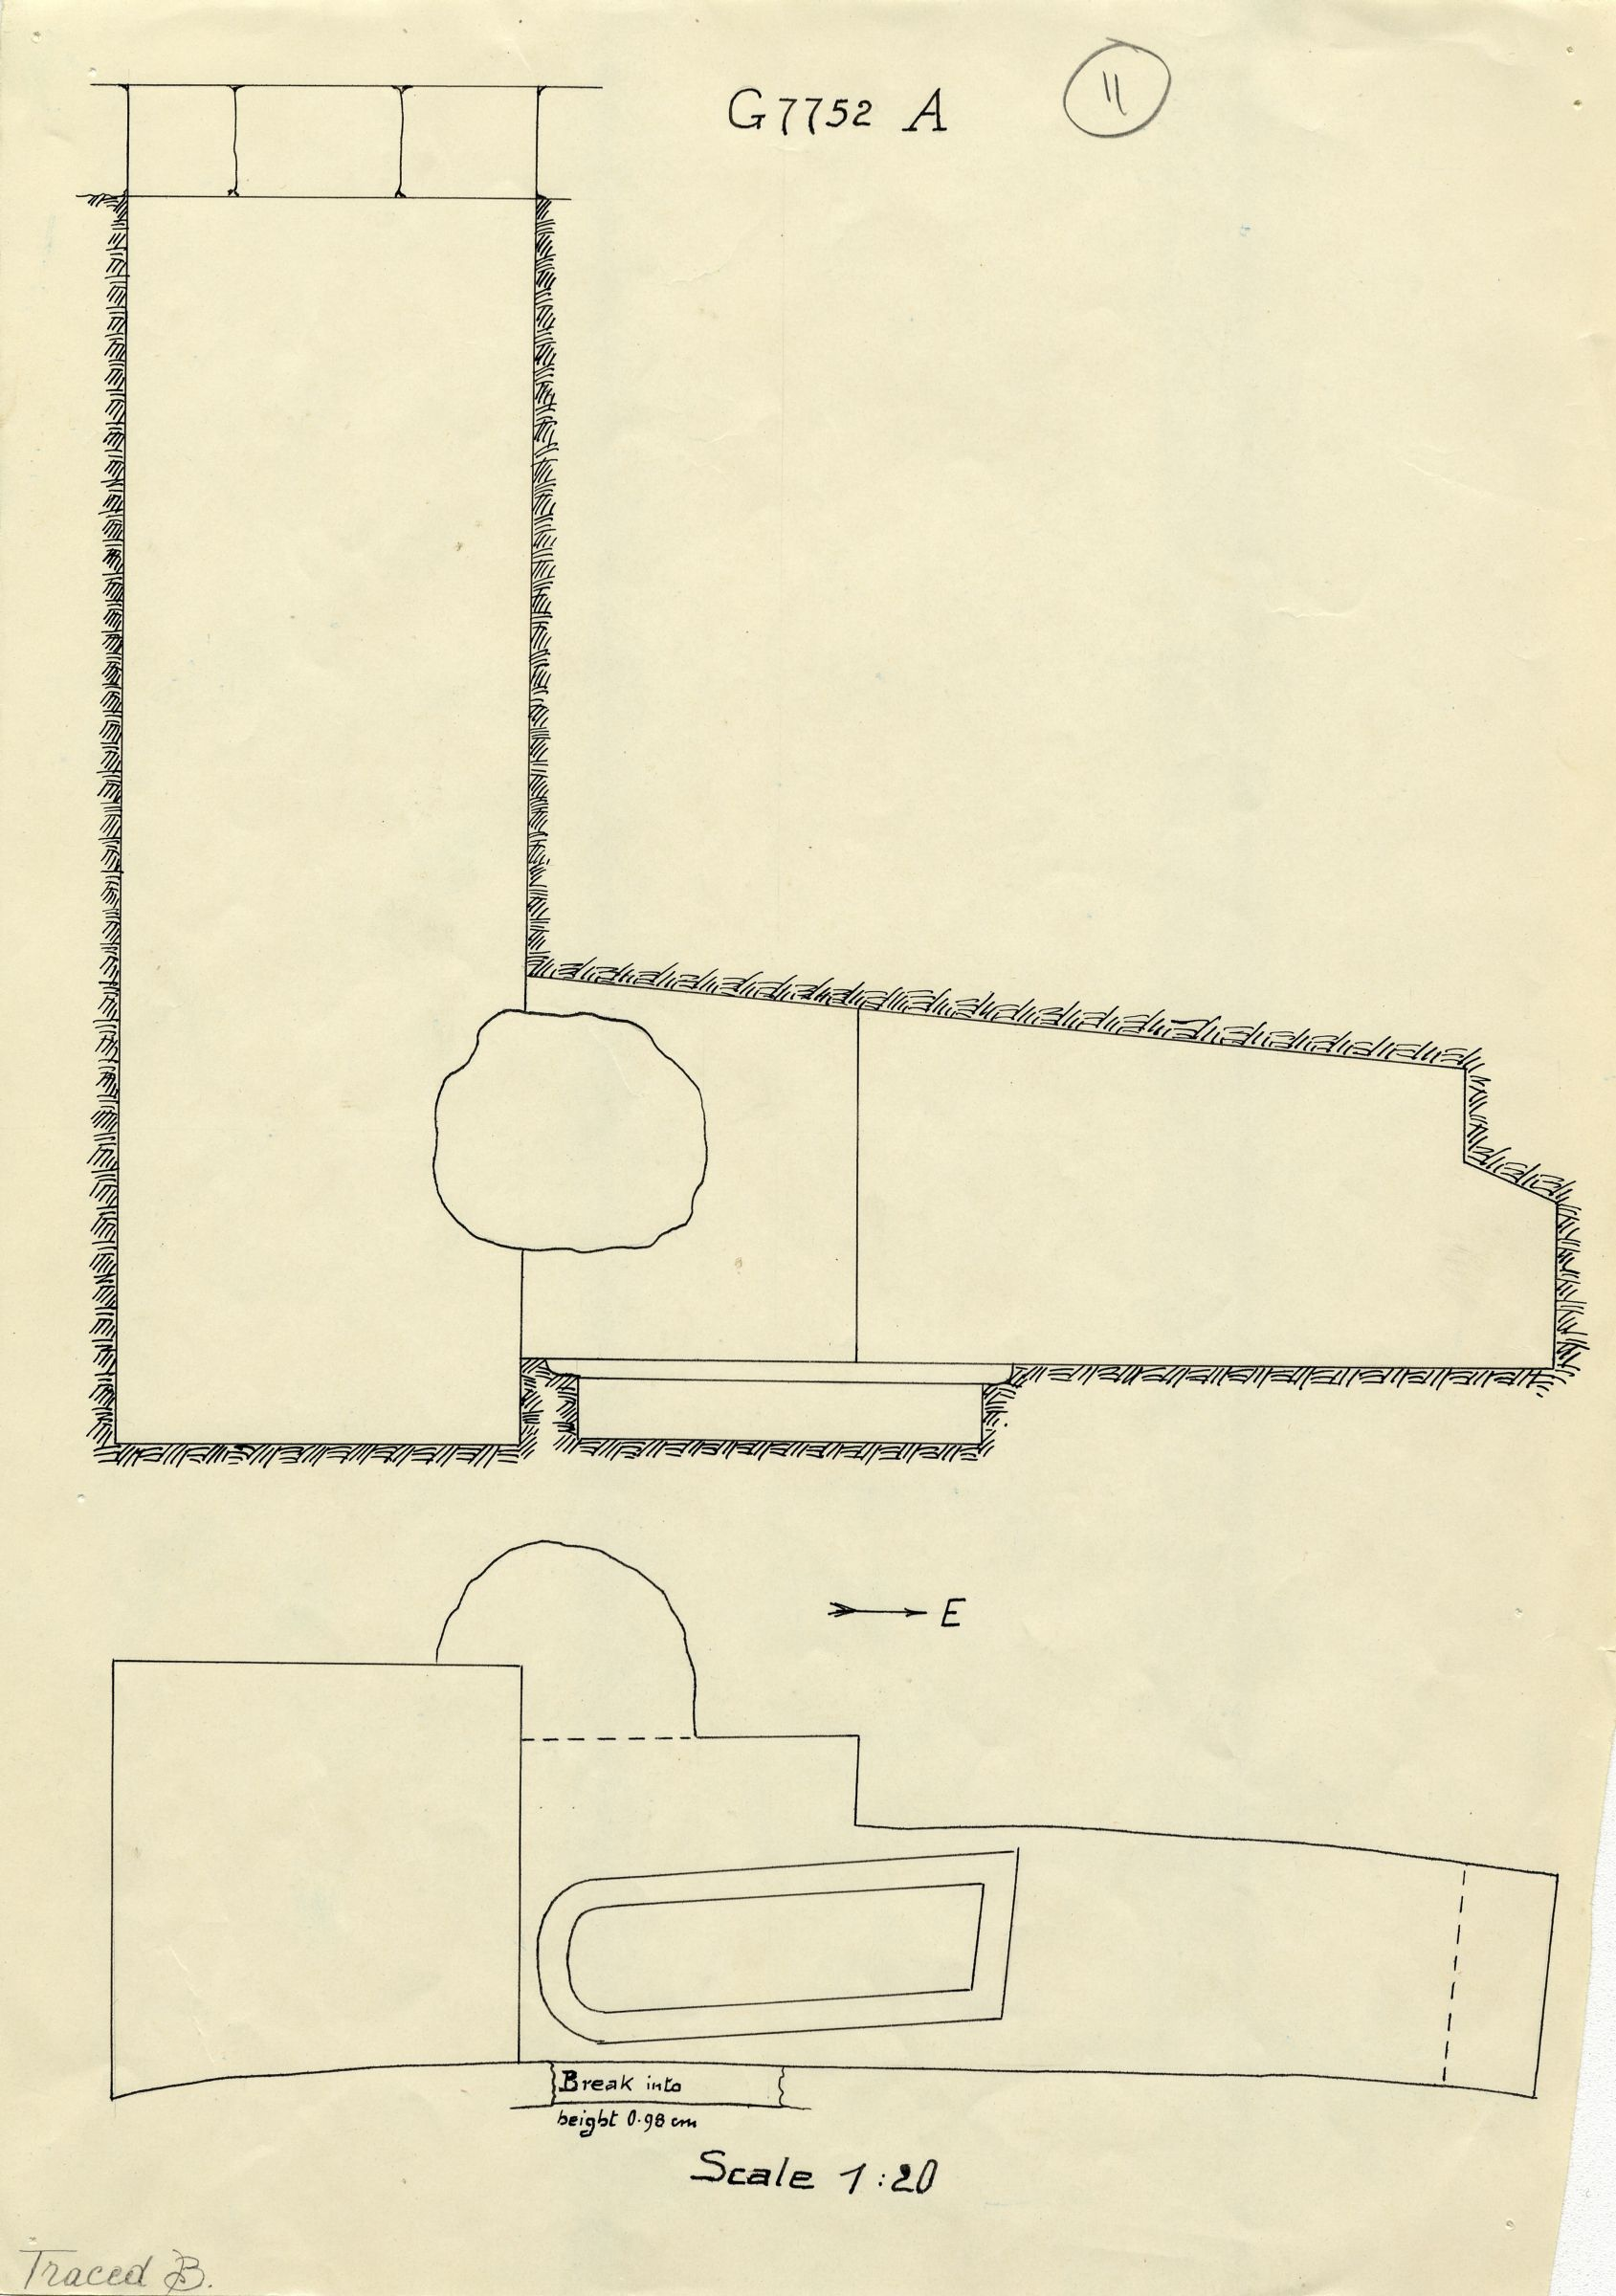 Maps and plans: G 7752, Shaft A